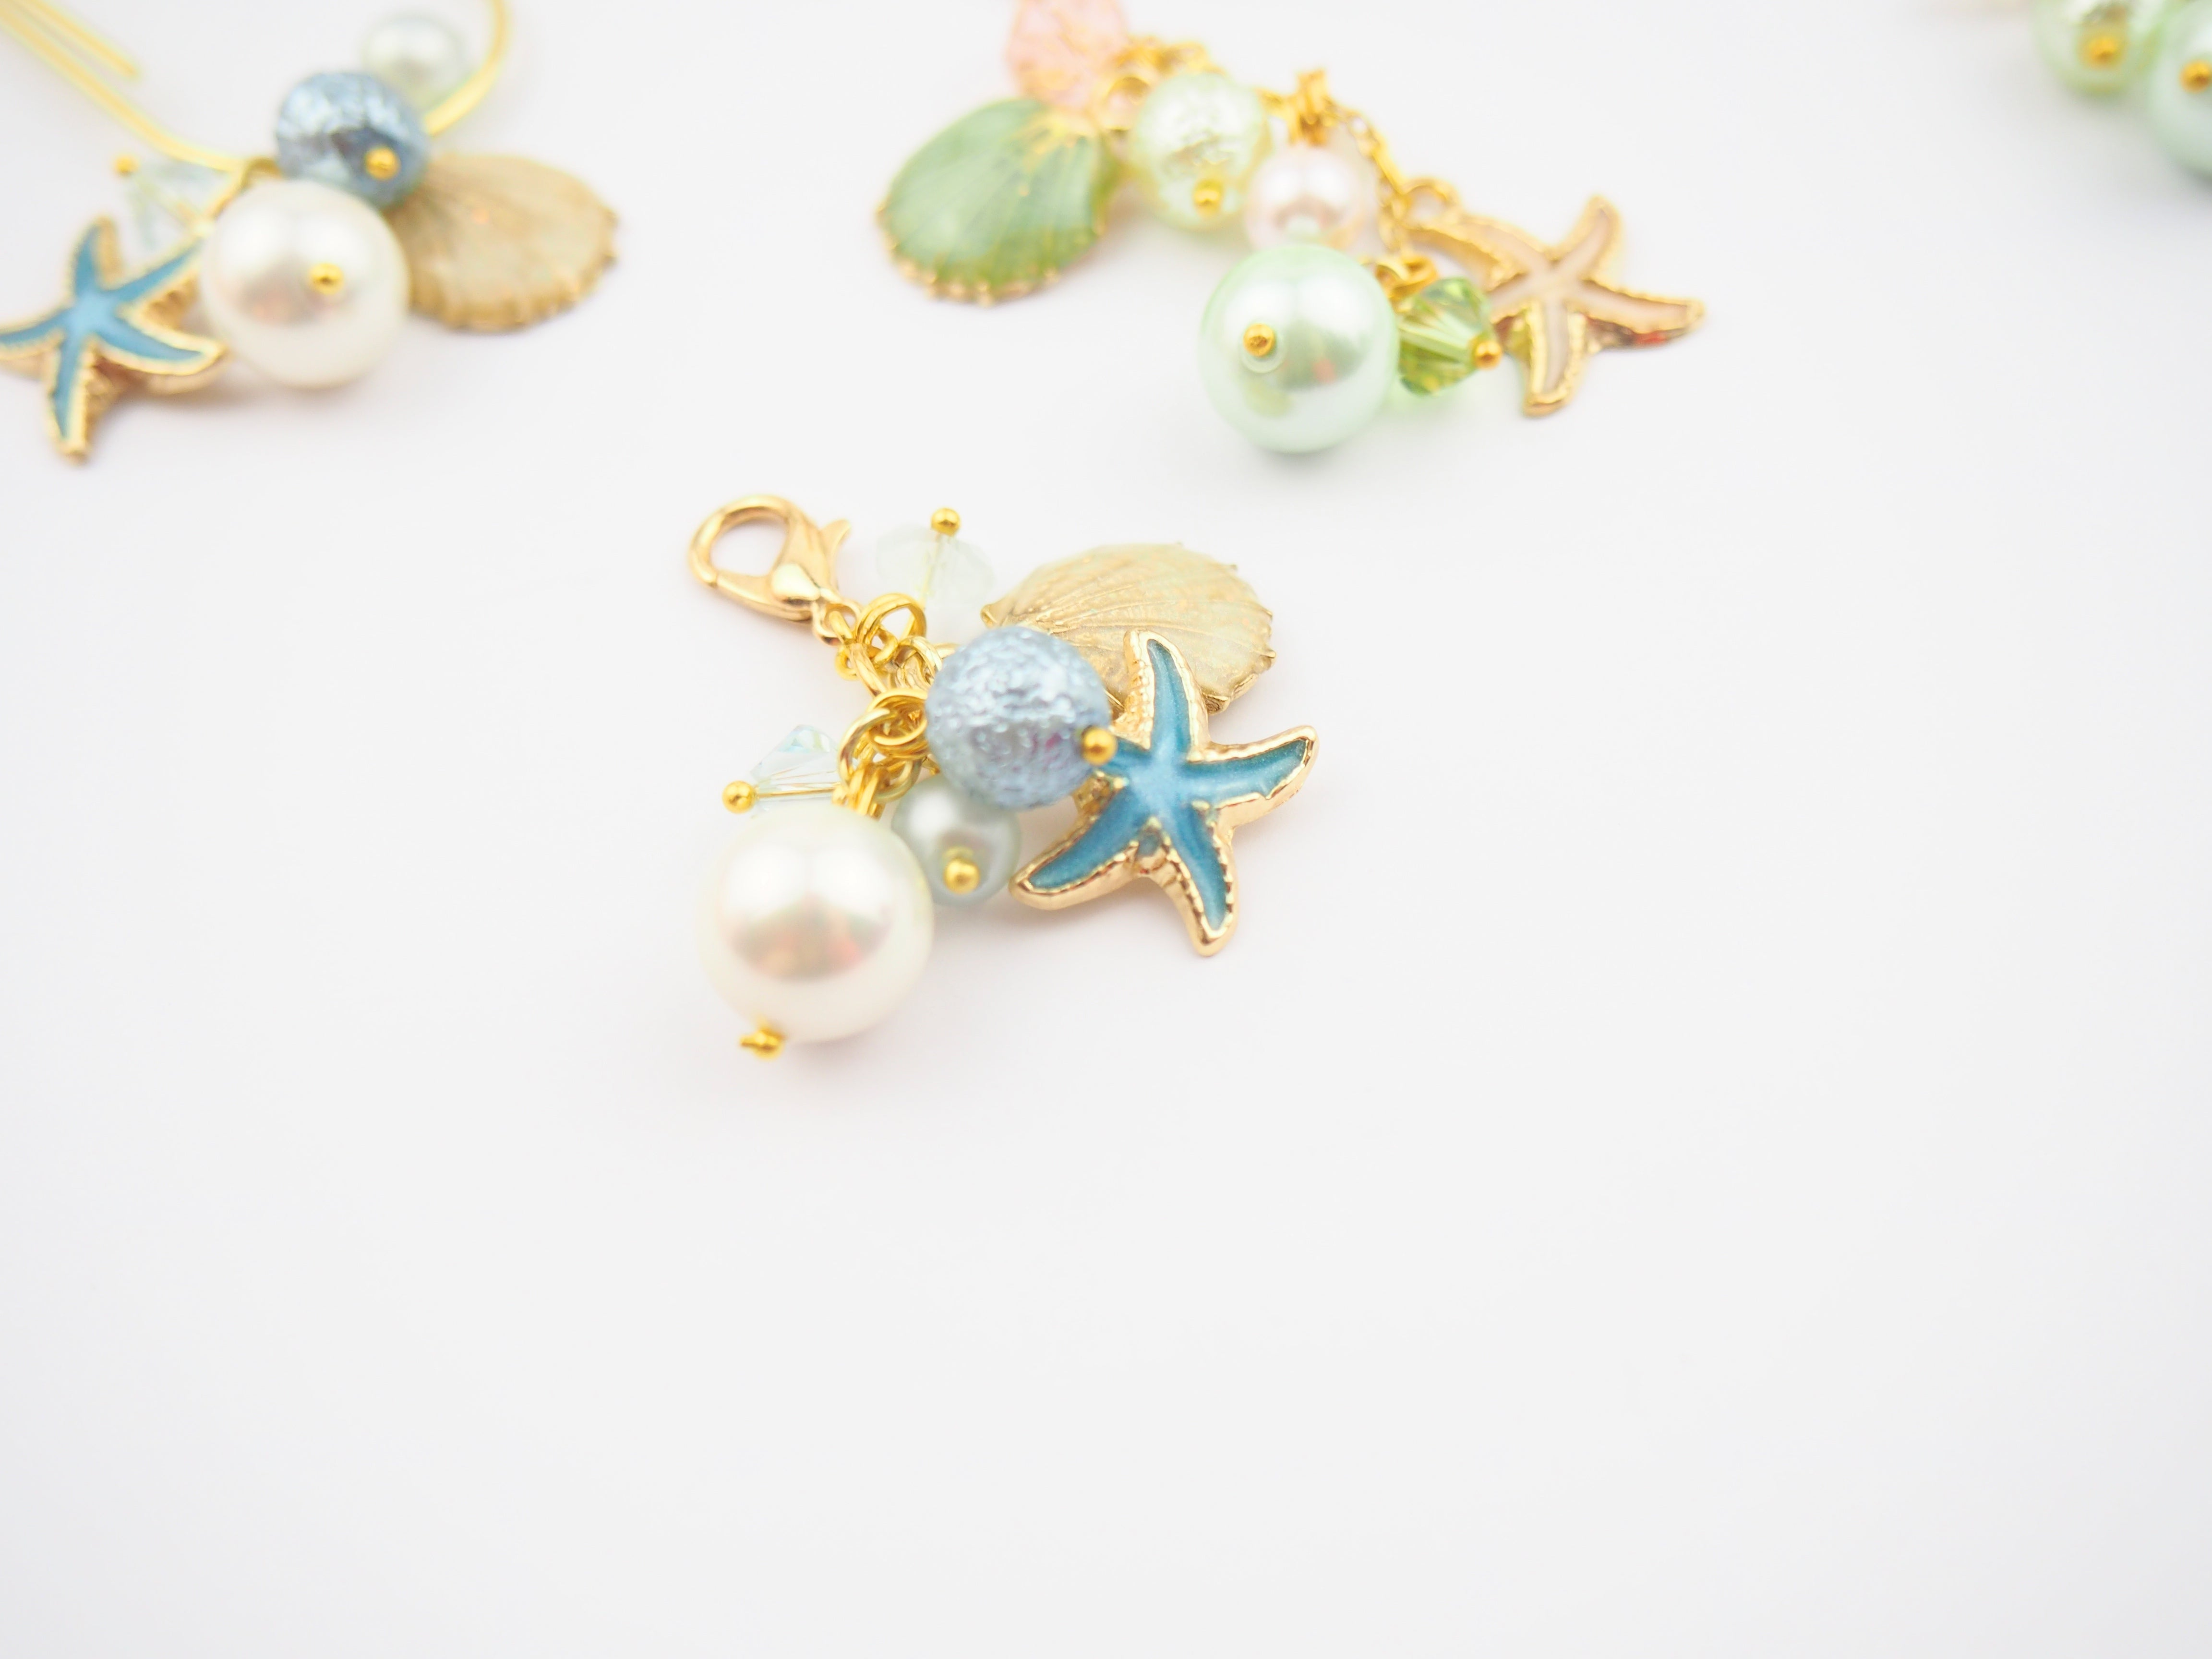 Treasures of the SEA Planner Charms